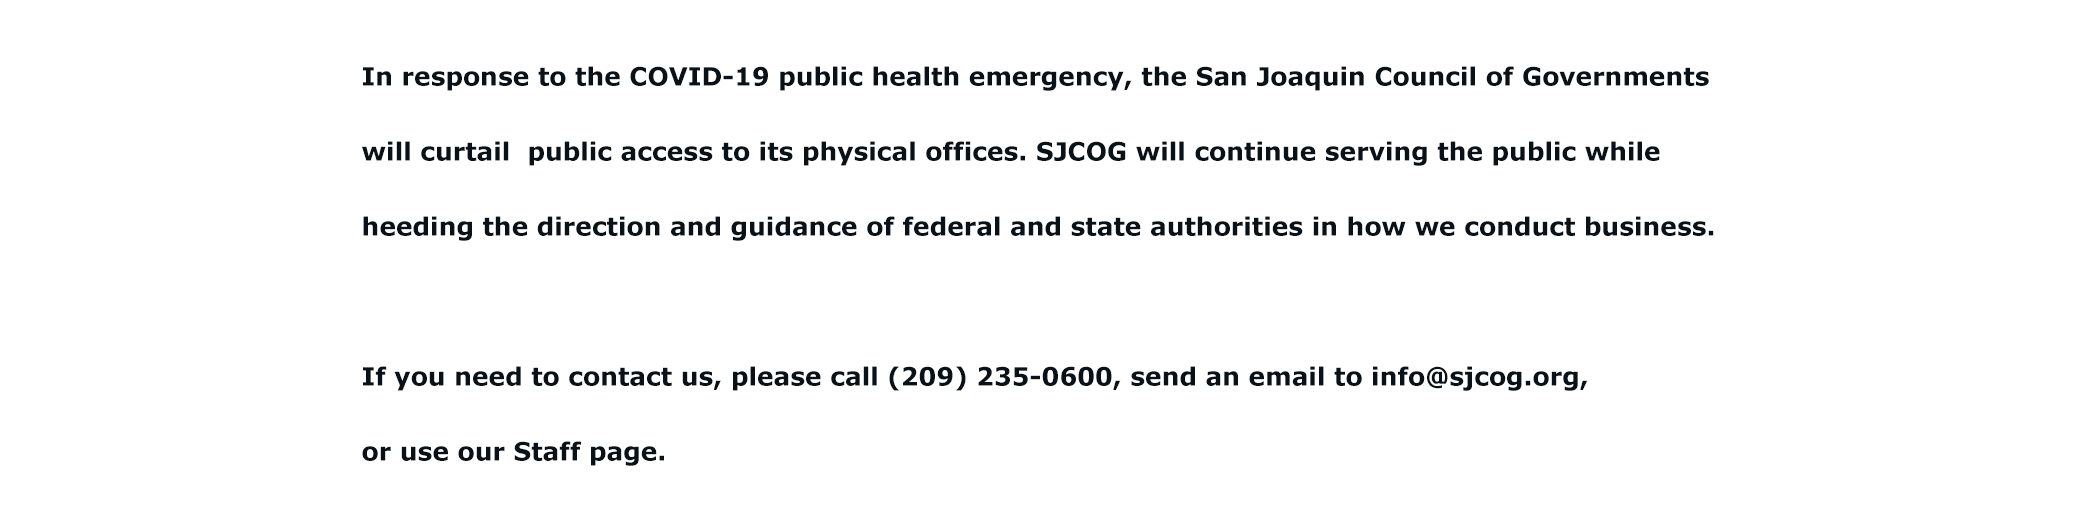 SJCOG offices closed in response to COVID health emergency